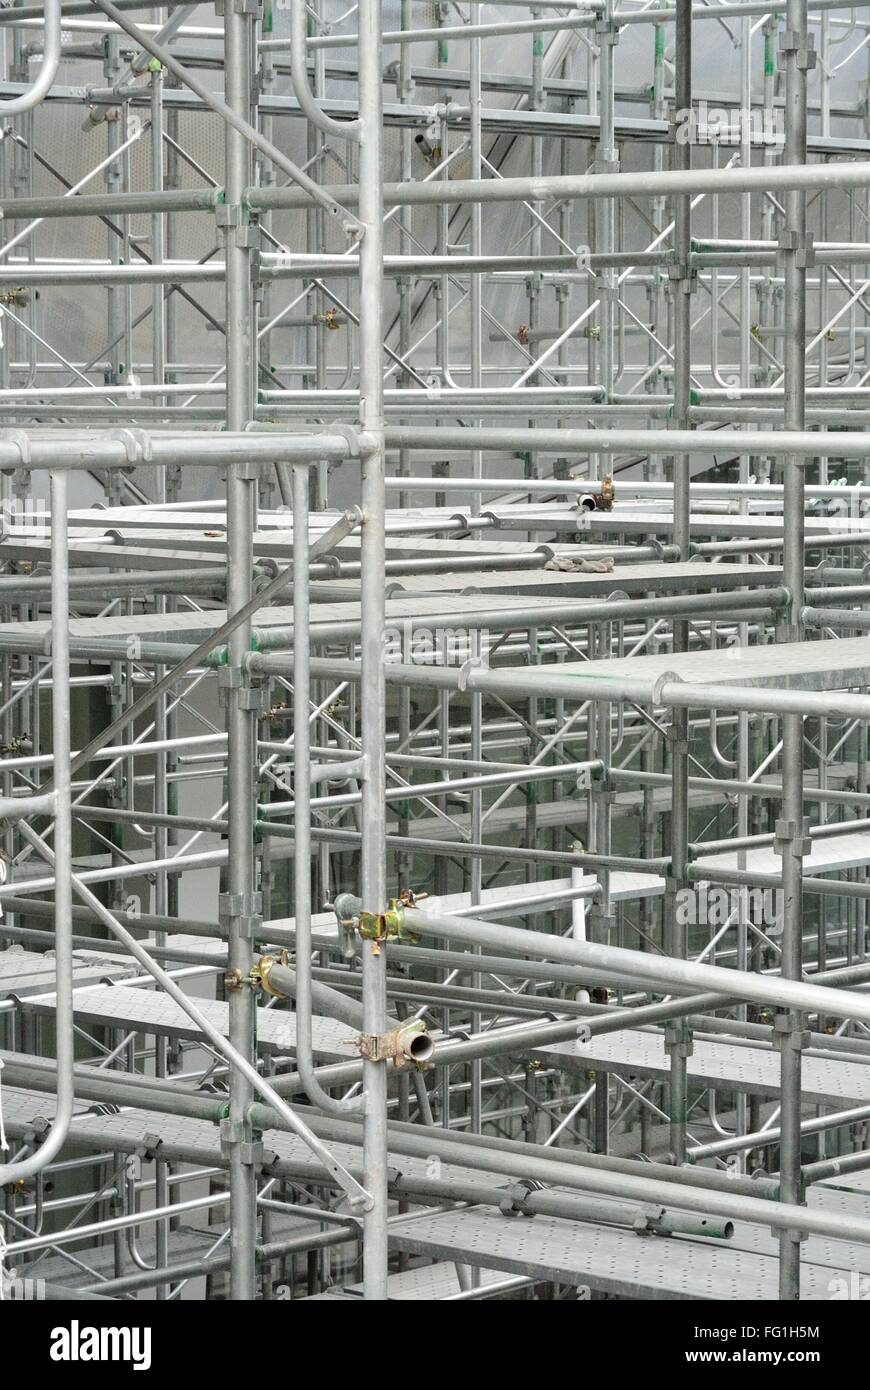 Close-Up View Of Scaffolding - Stock Image